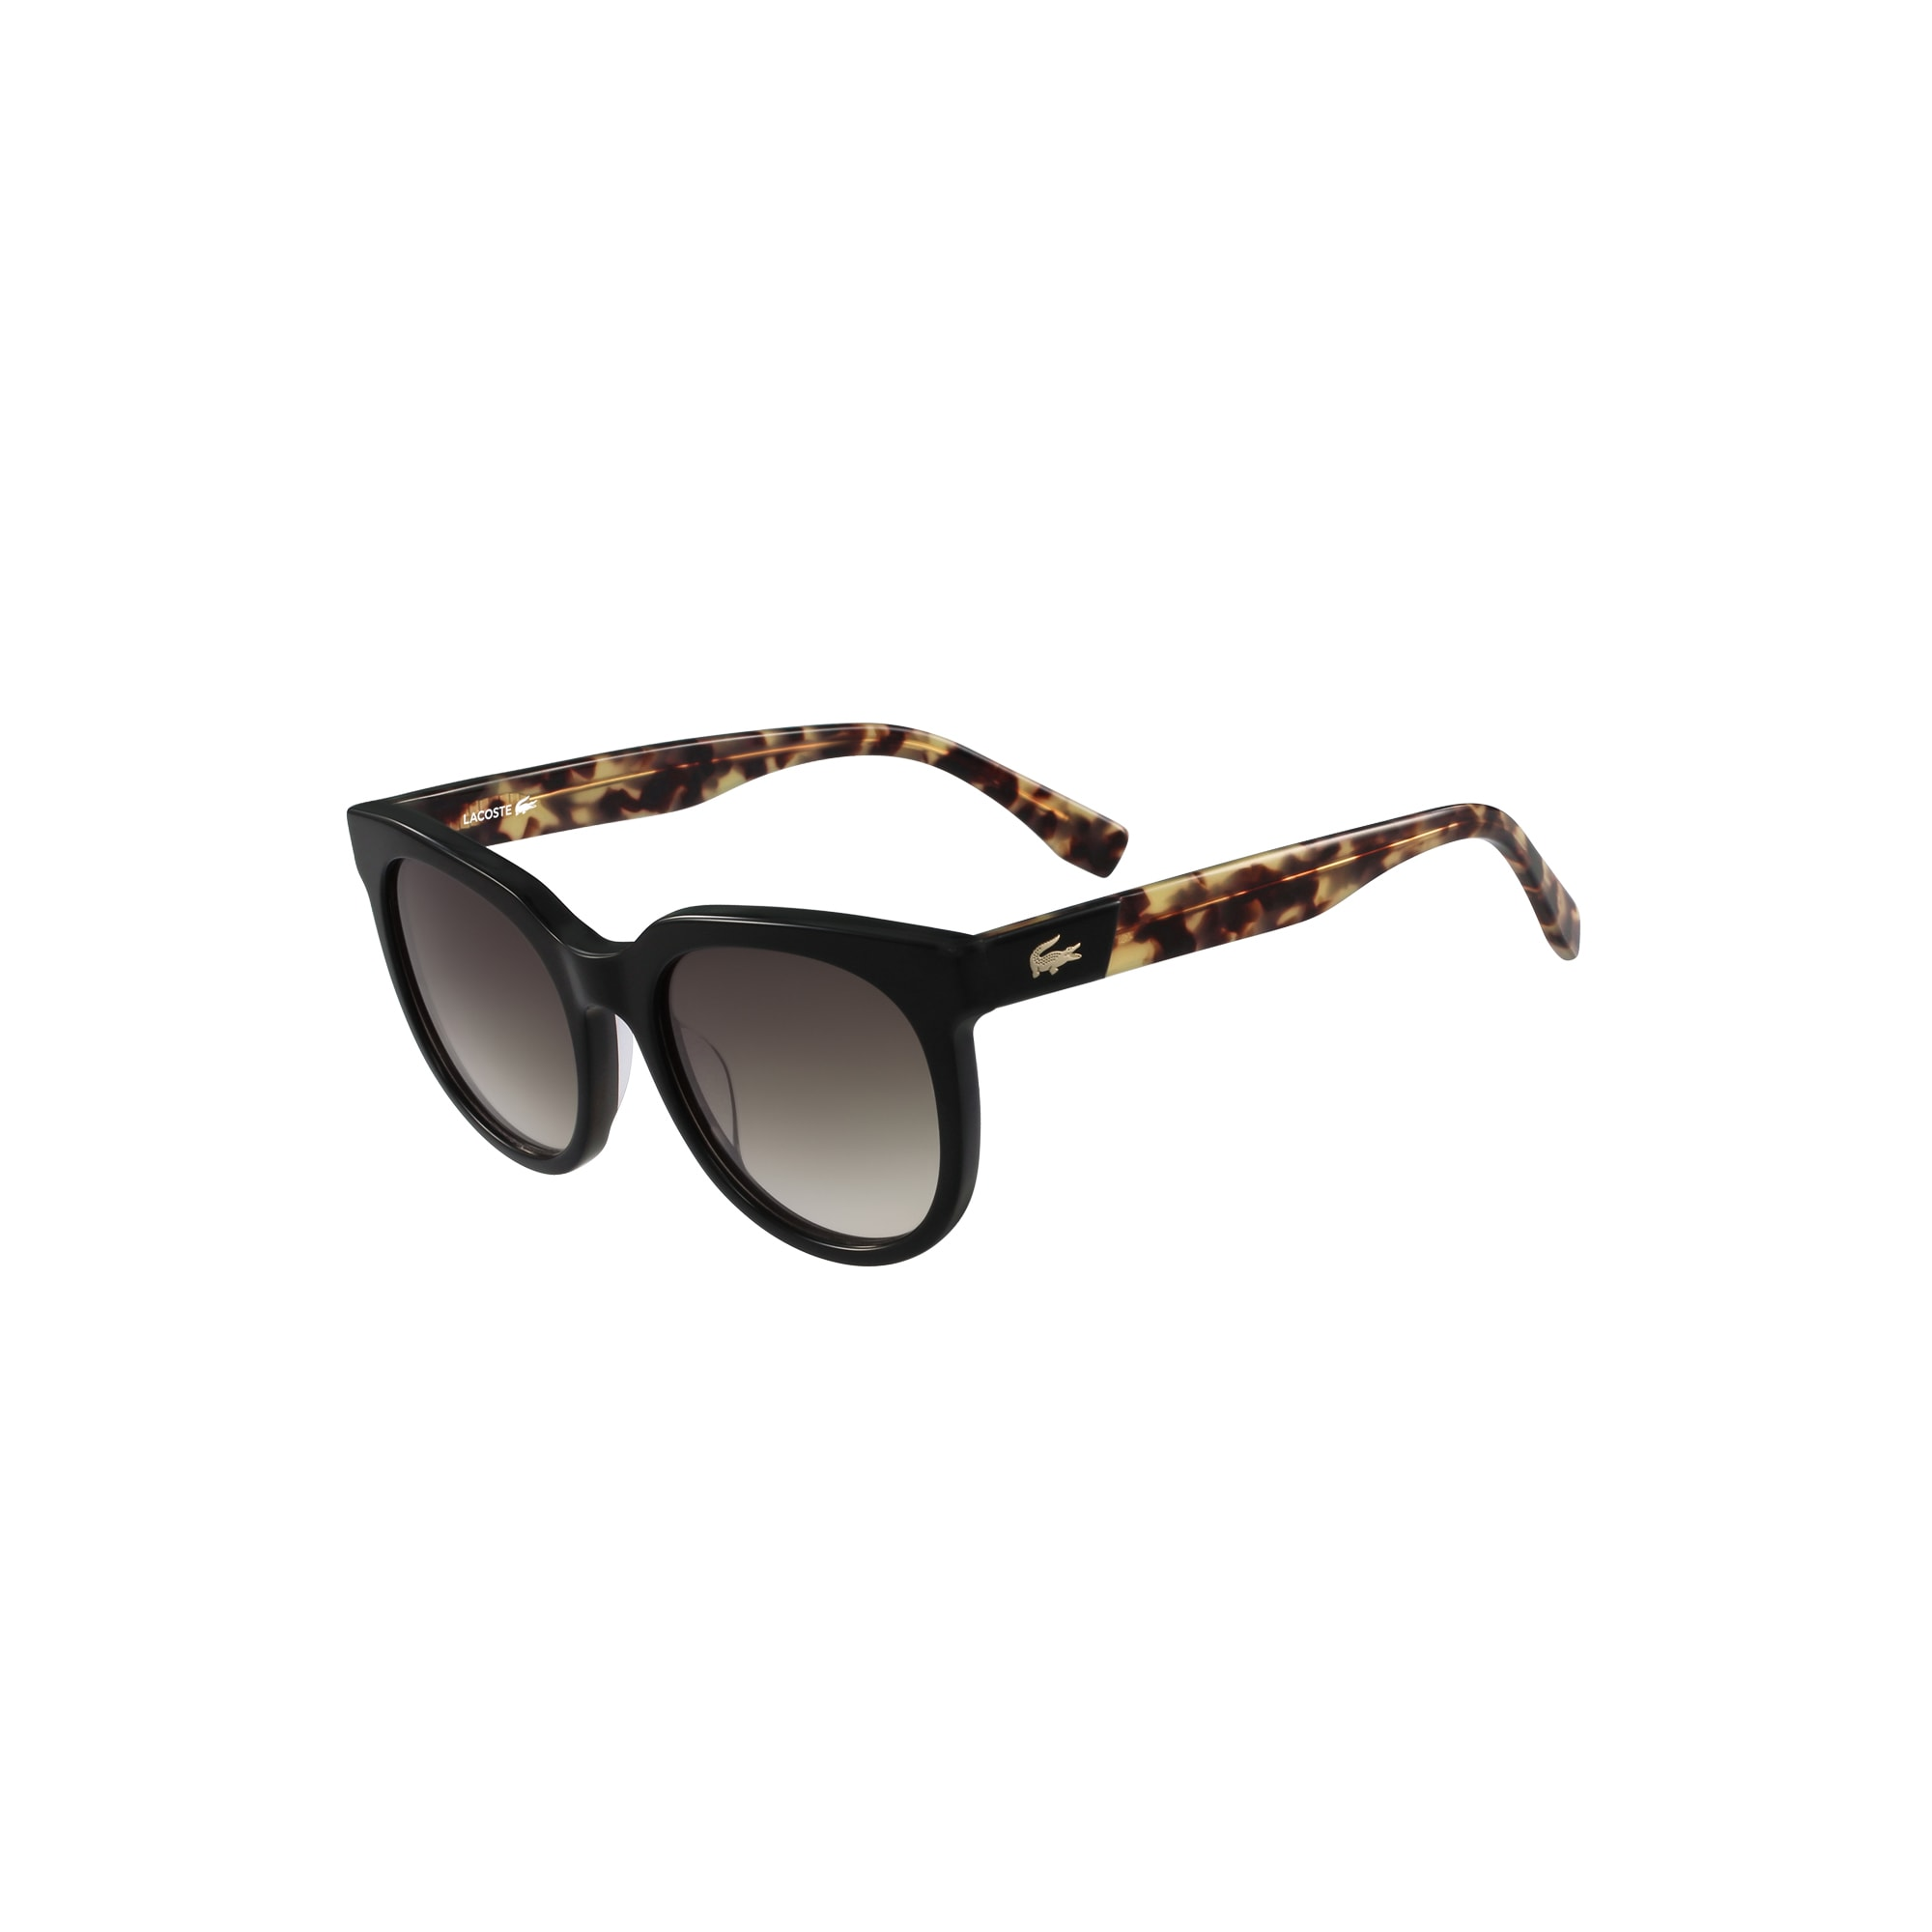 Women's Vintage Inspired Square Sunglasses